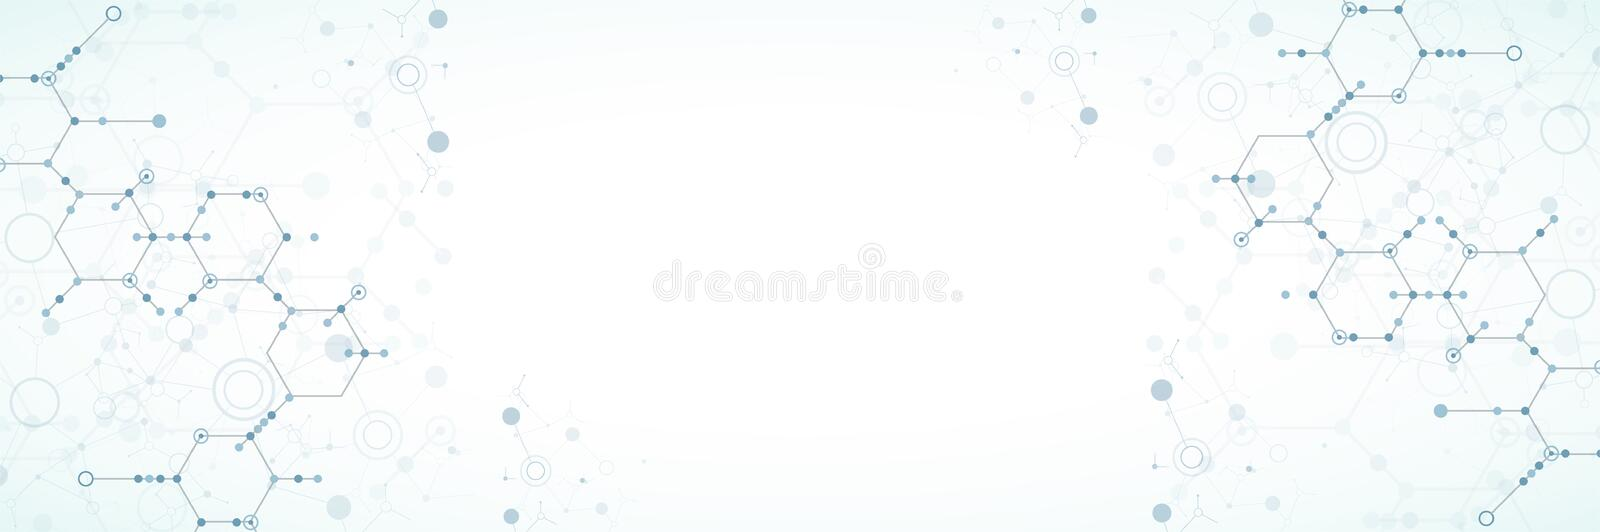 Abstract technology hexagonal background. Connection structure. royalty free illustration